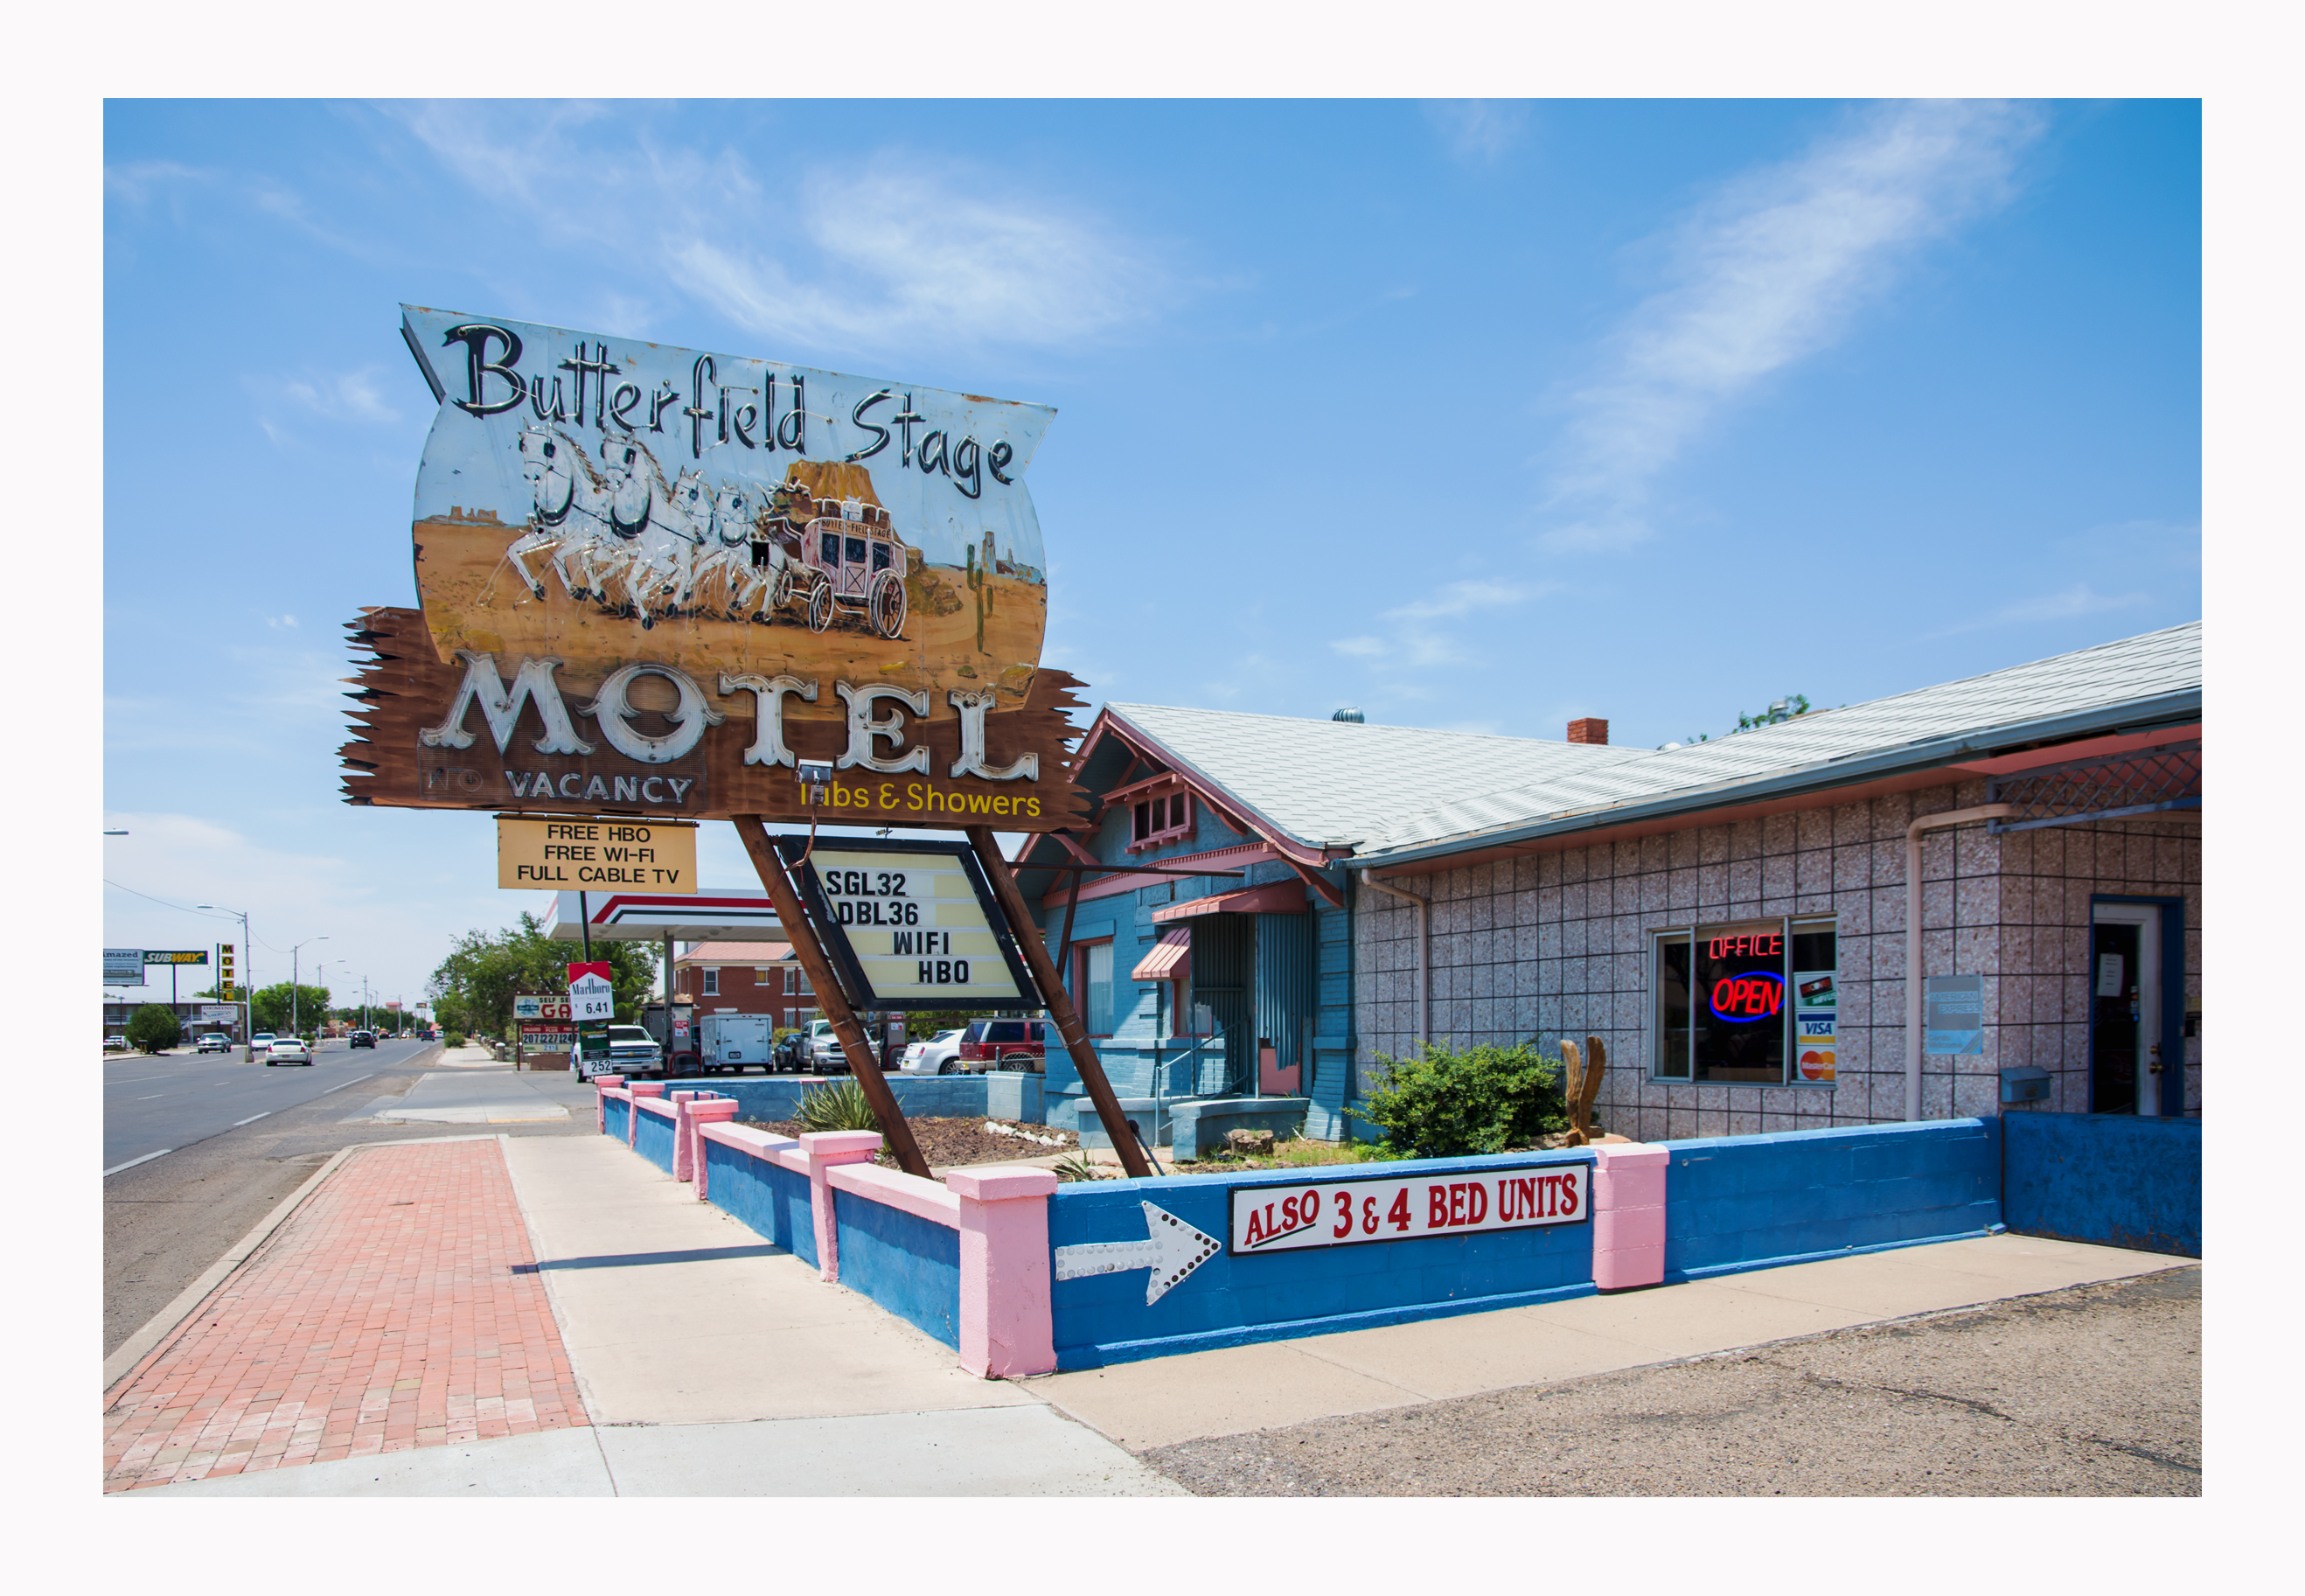 Butterfield Stage Motel - 309 West Pine Street, Deming, New Mexico U.S.A. - July 28, 2016